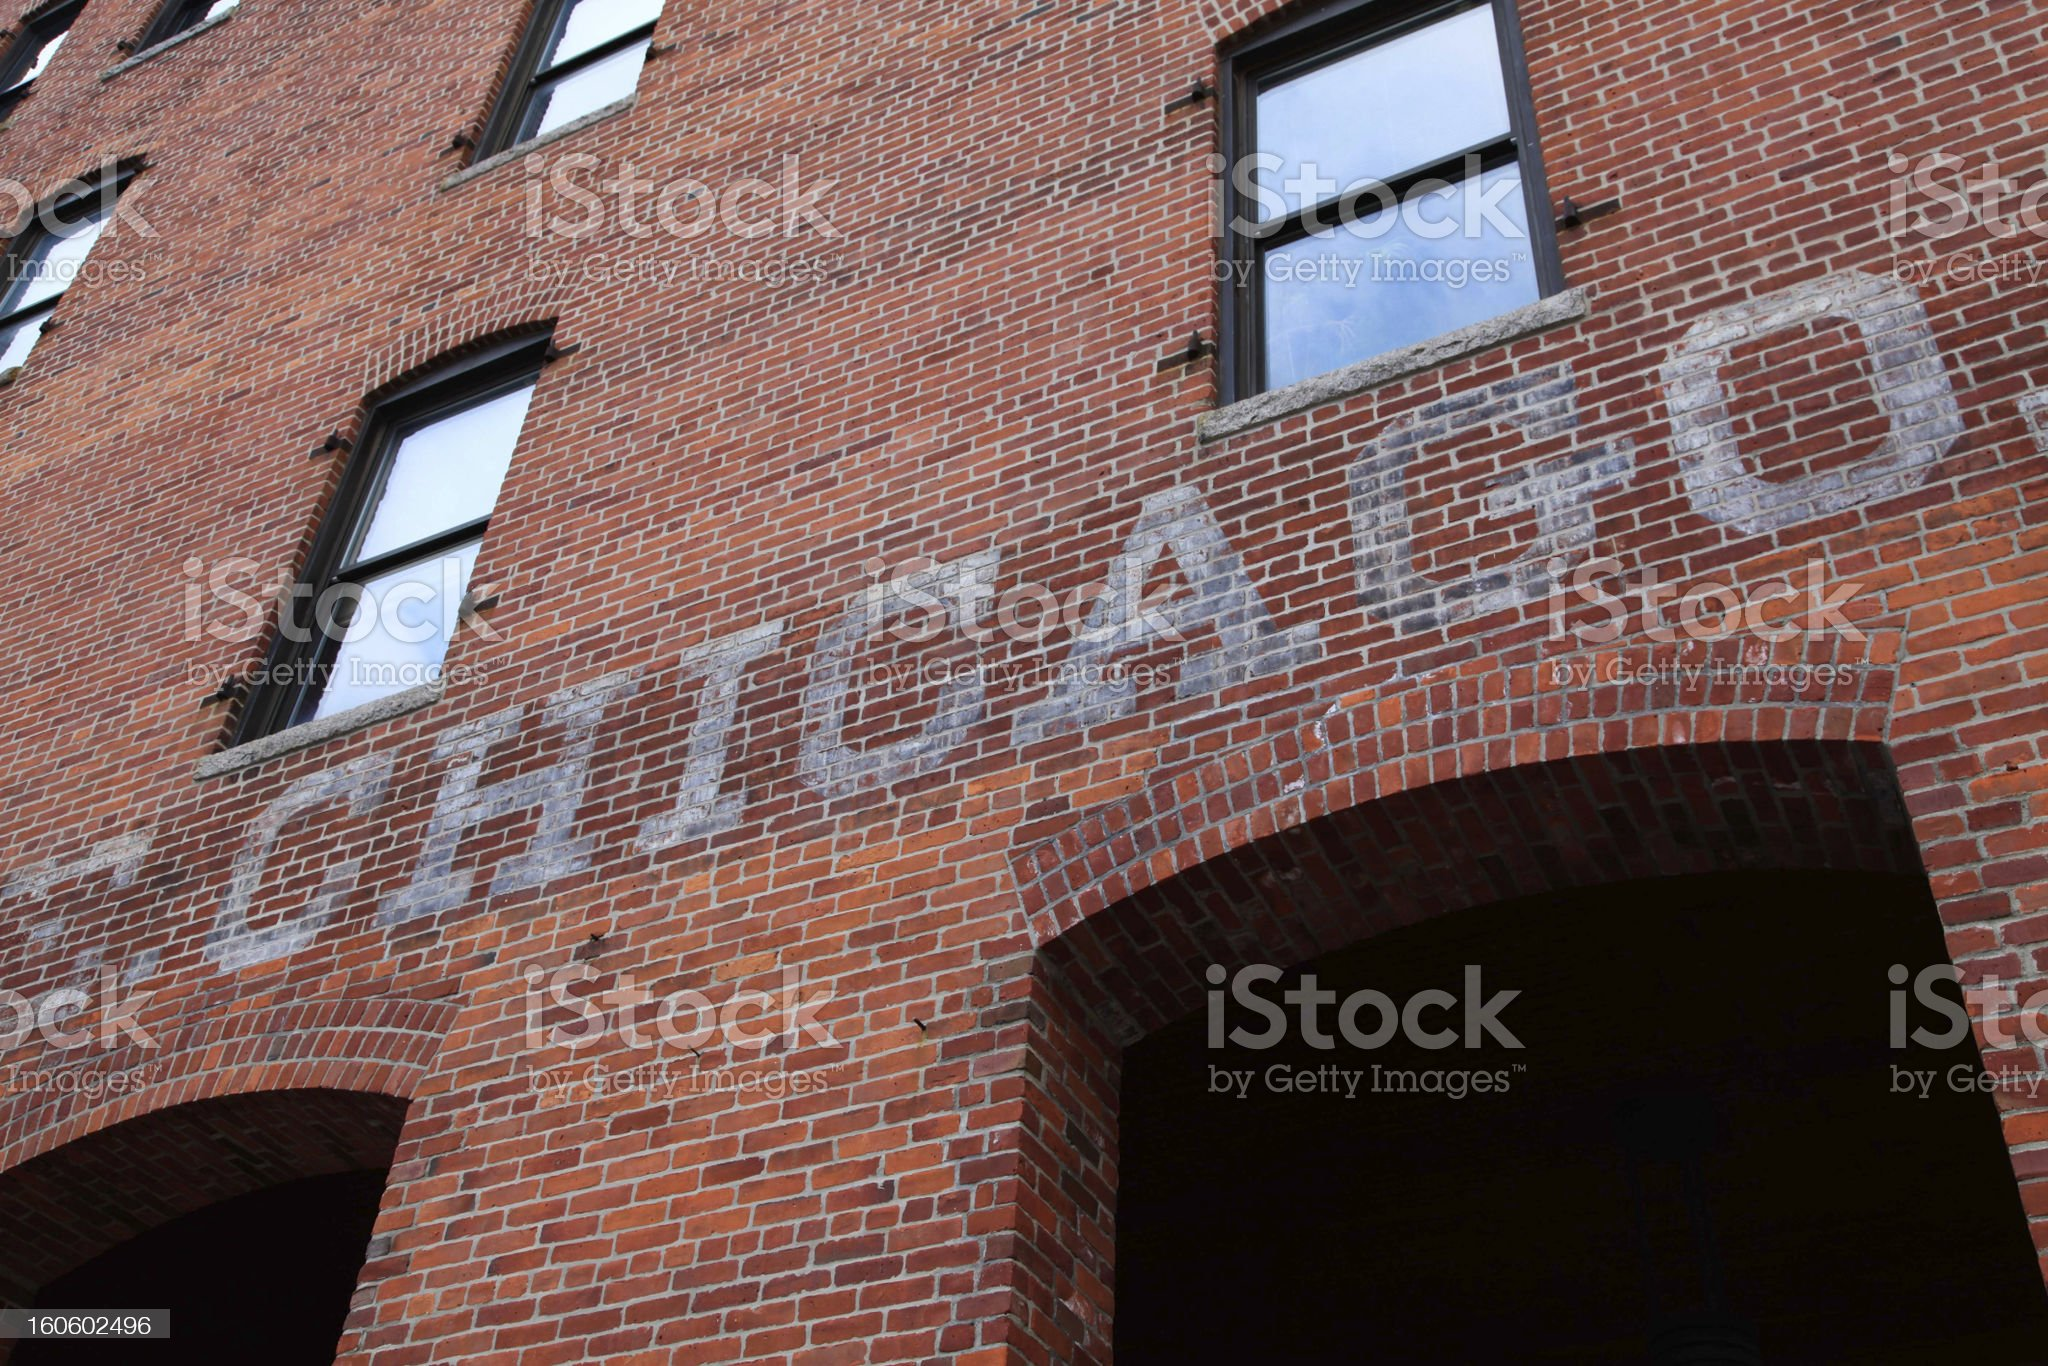 Chicago painted in brick wall royalty-free stock photo